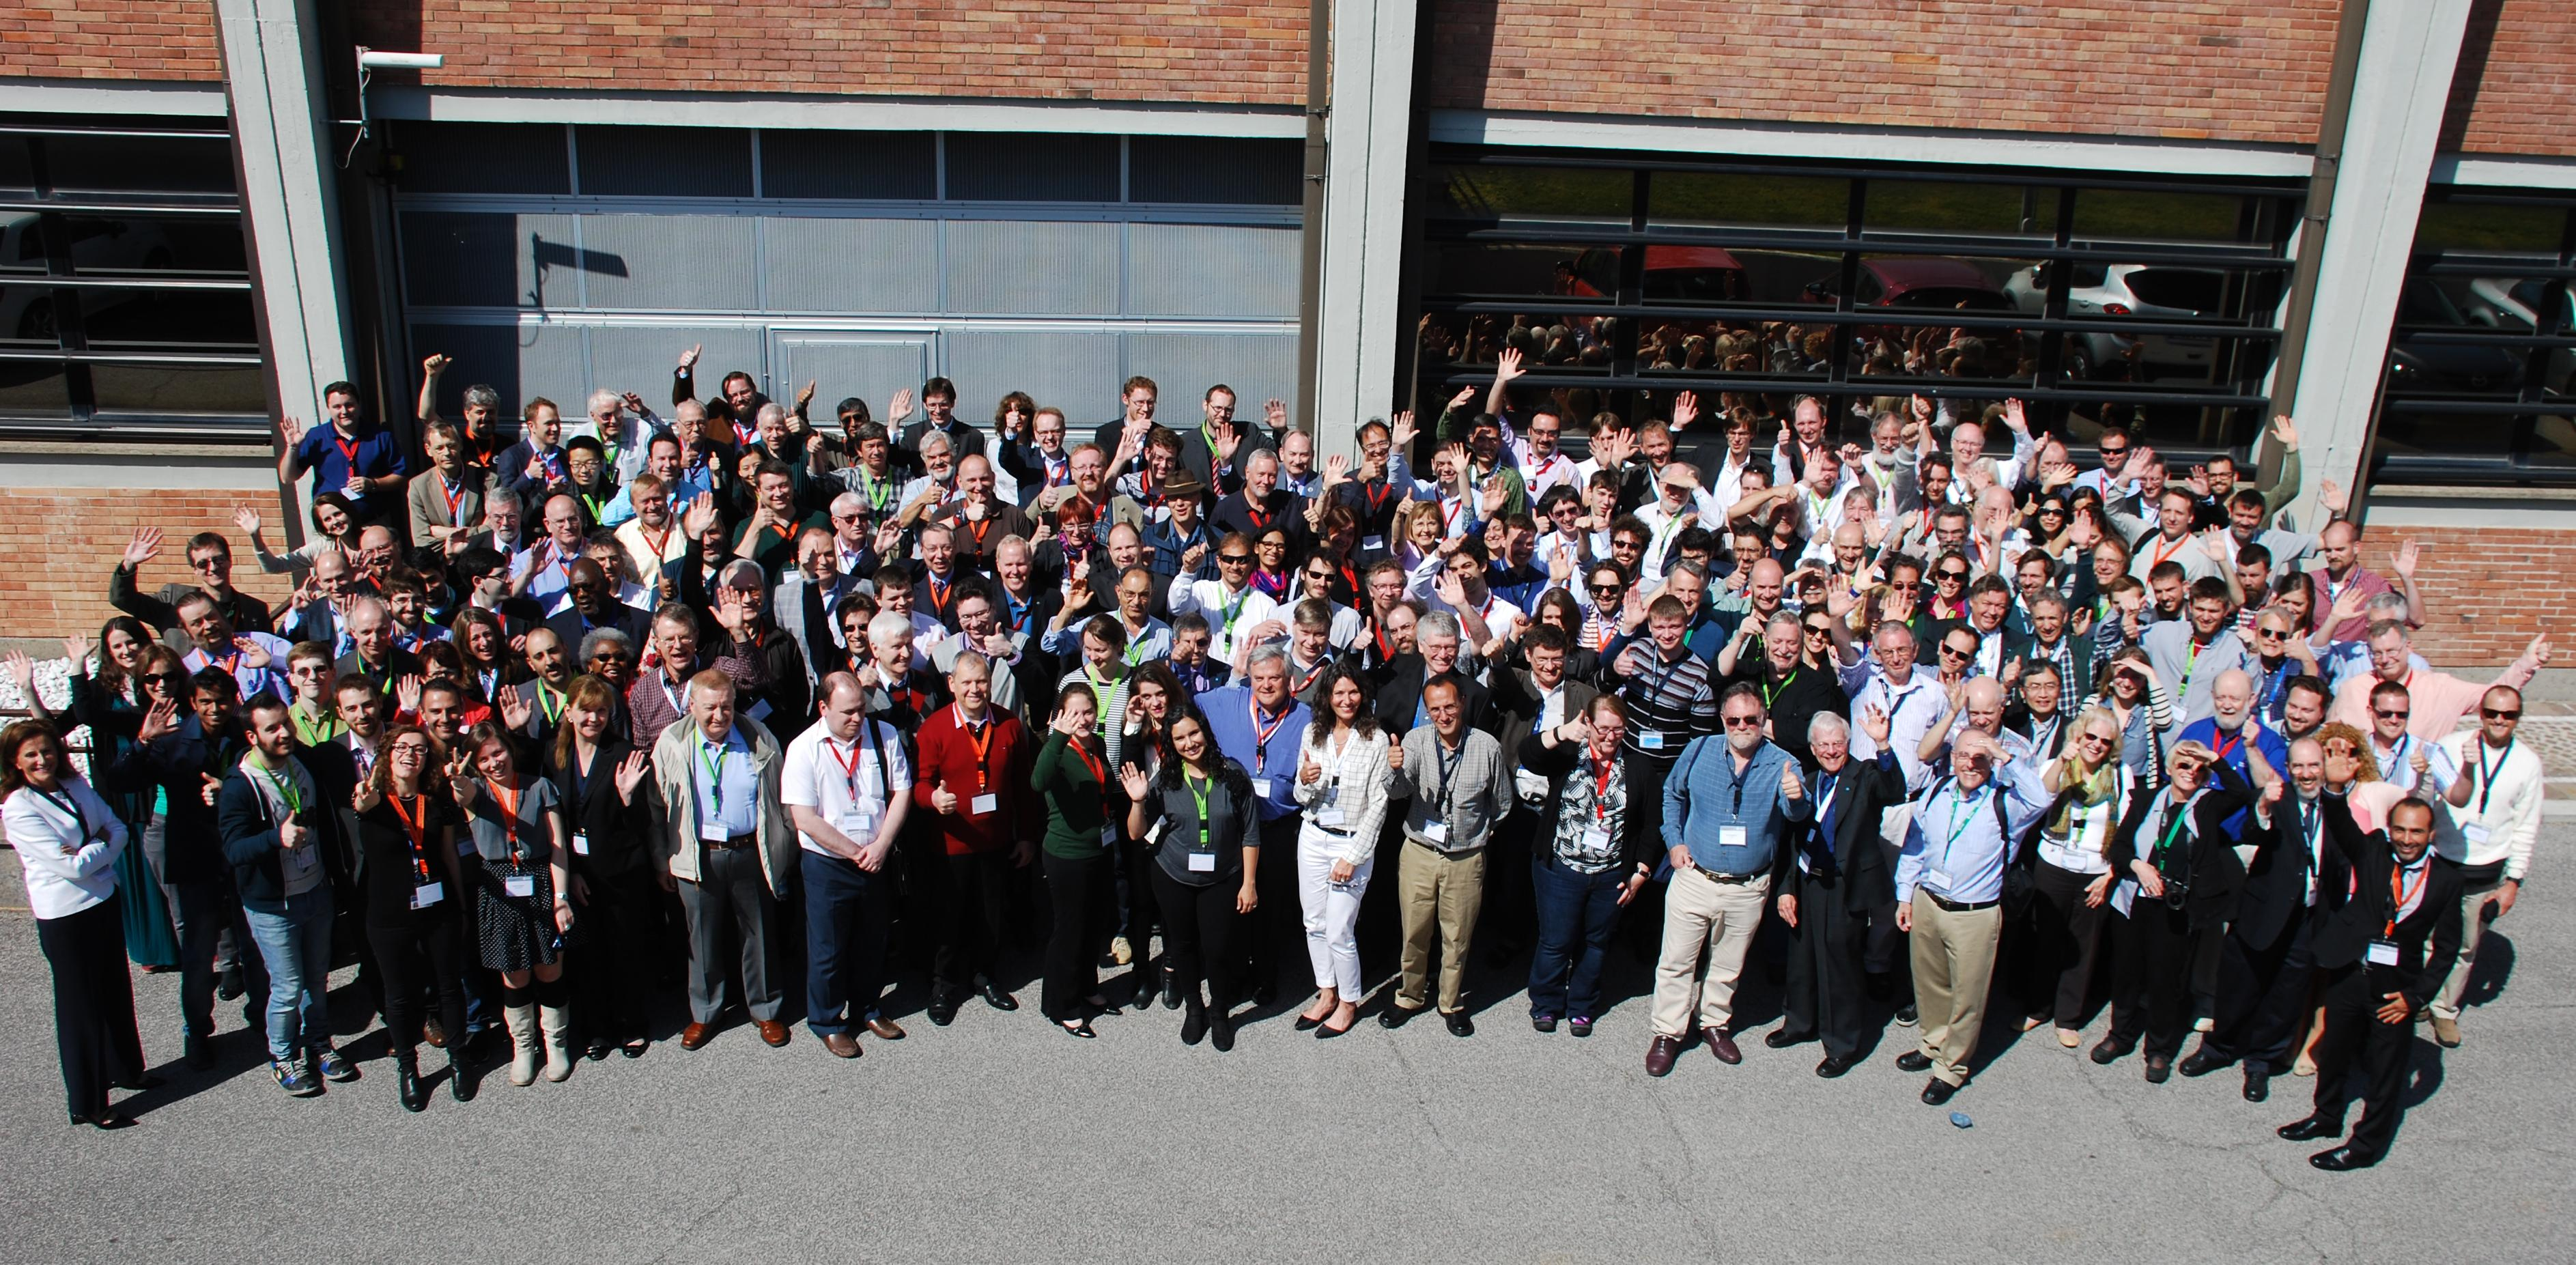 PDC 2015 participants in Frascati, Italy